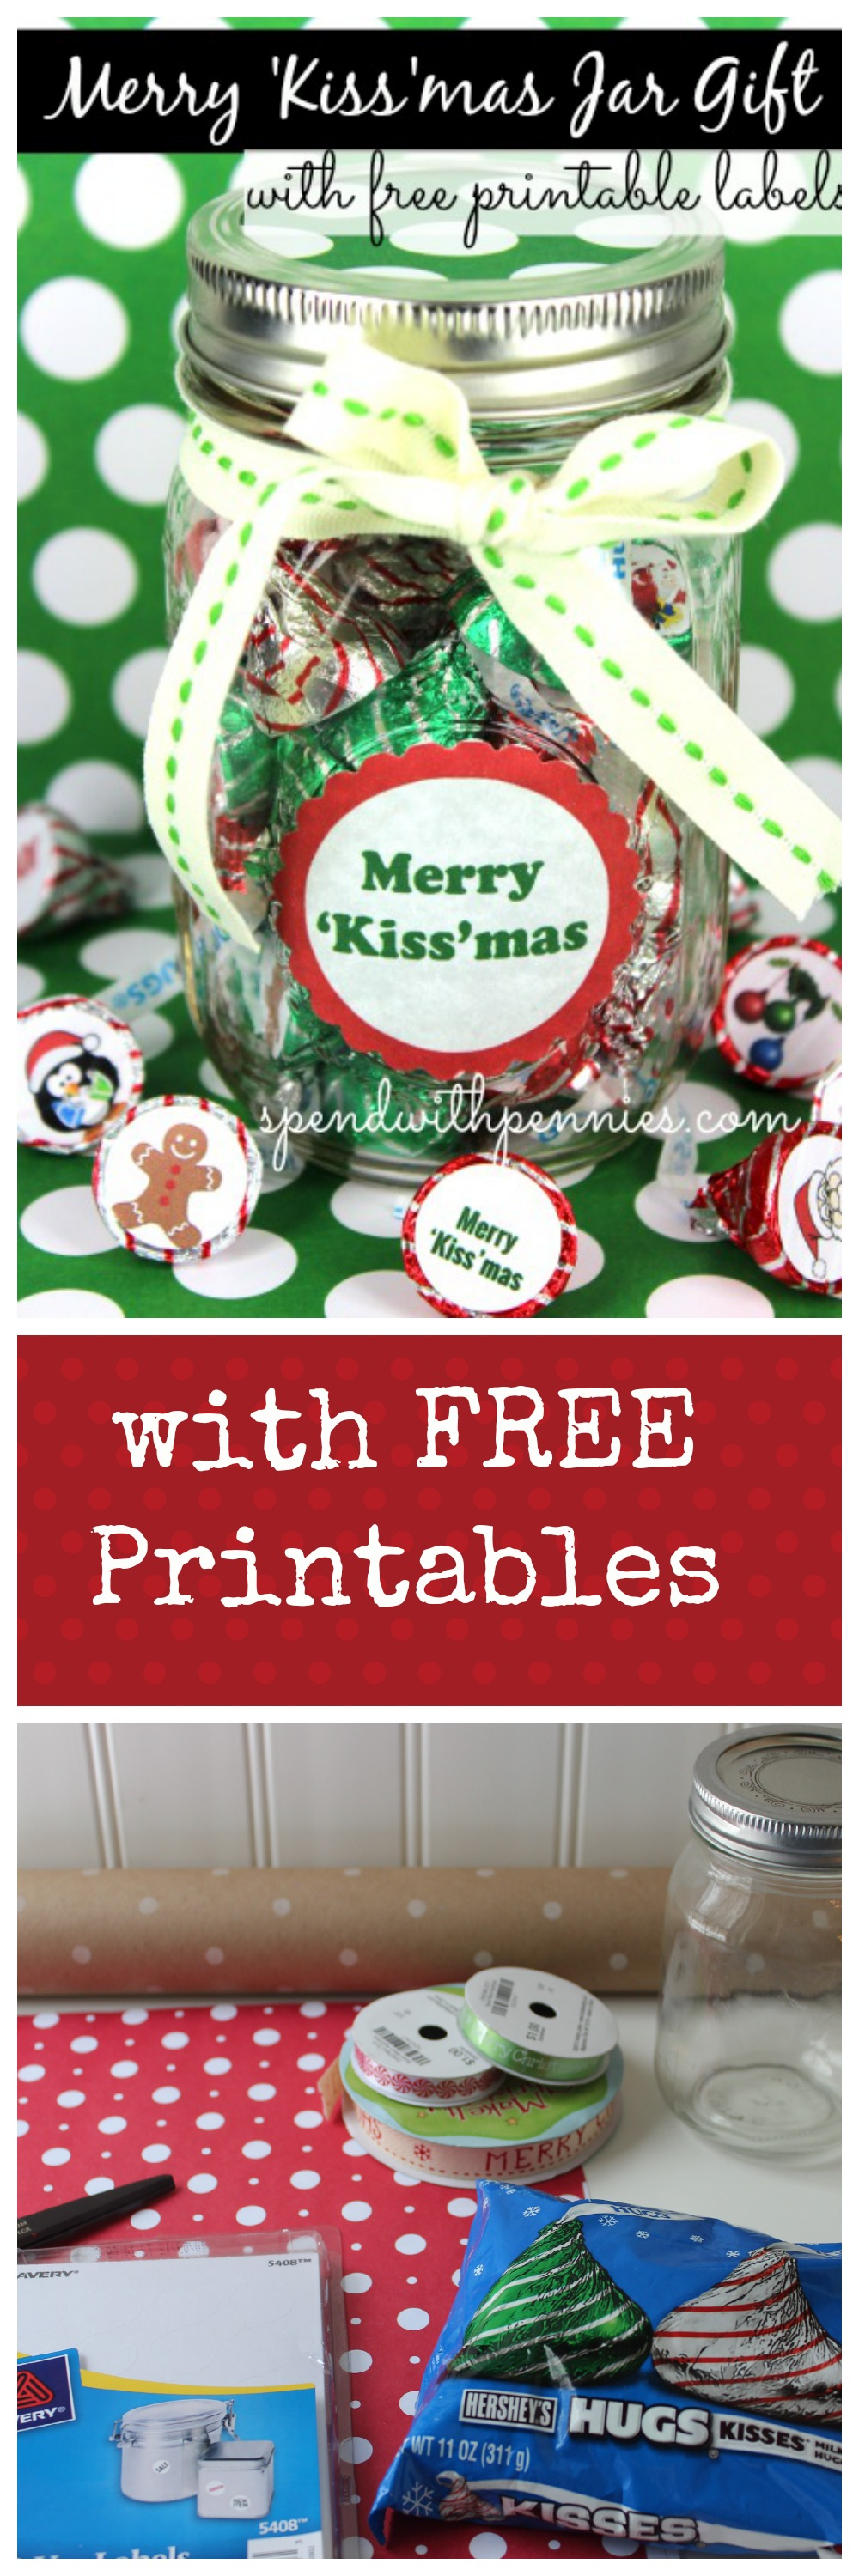 Merry ukissumas jar gift cute for teachers gifts free printable